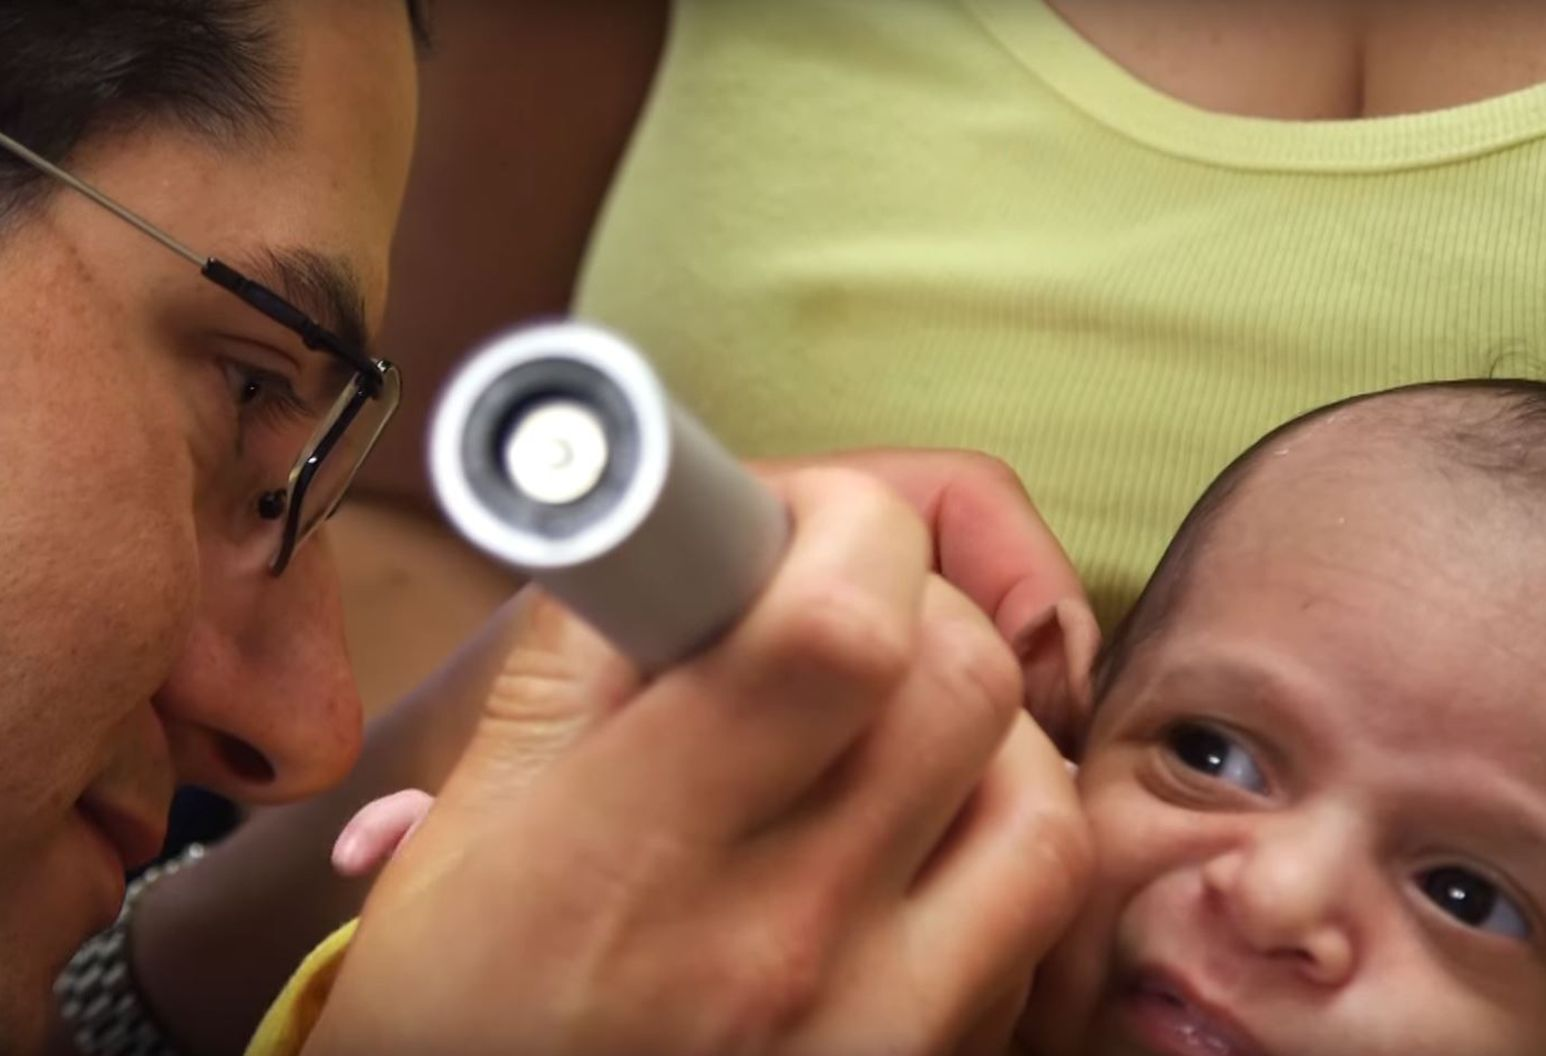 Dr. Lee Smith, a pediatric otolaryngologist, examines a baby's ear.